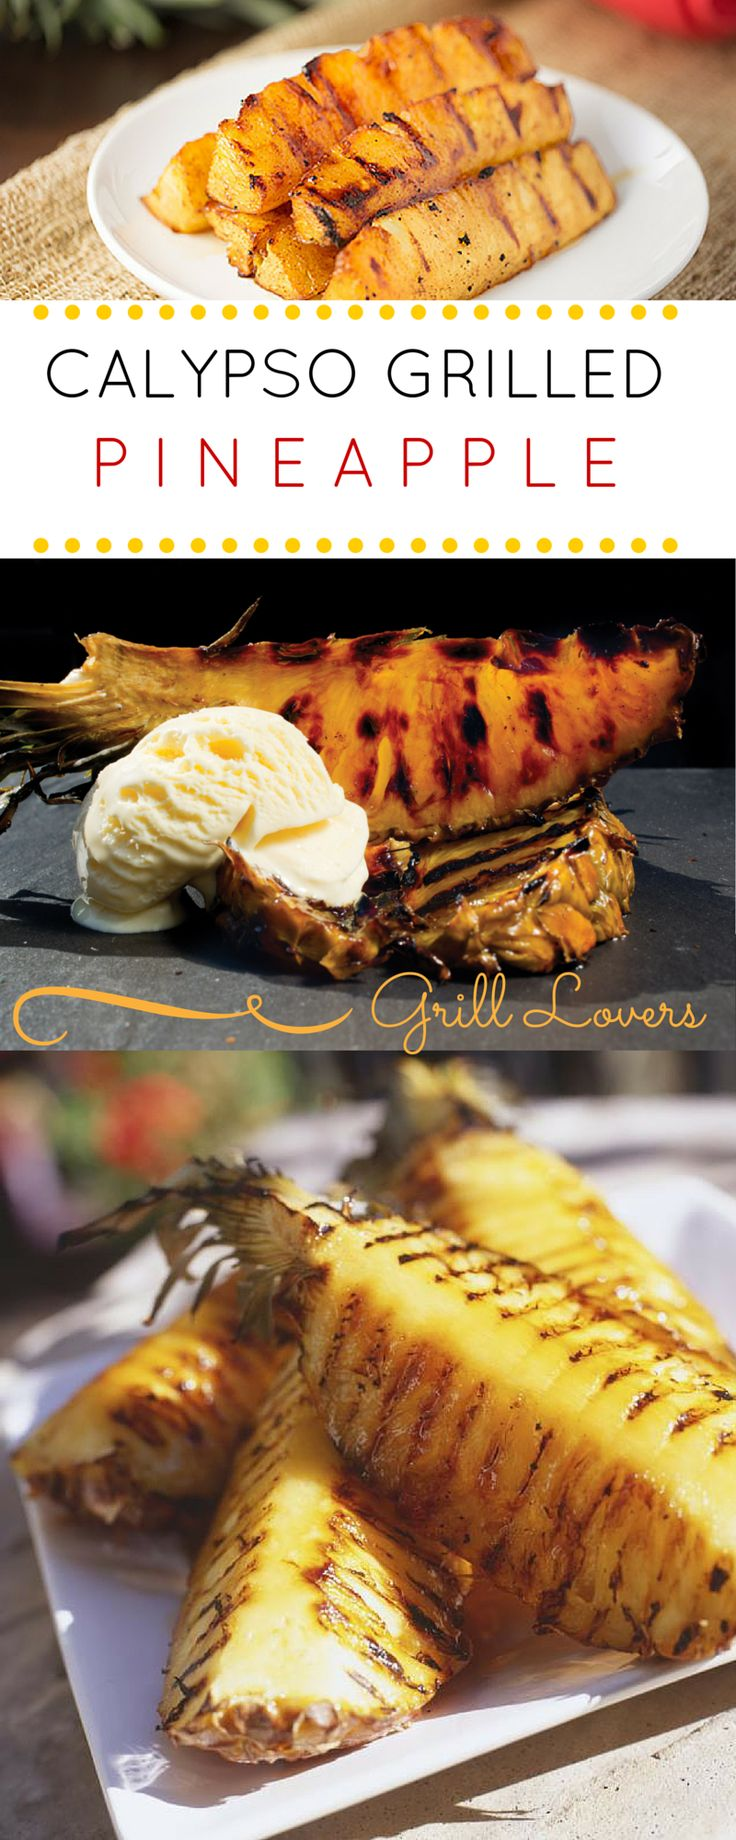 DesertRose,;,Grill Lovers' Amazing Calypso Grilled Pineapple Recipe #recipes #foodporn #foodie,;,